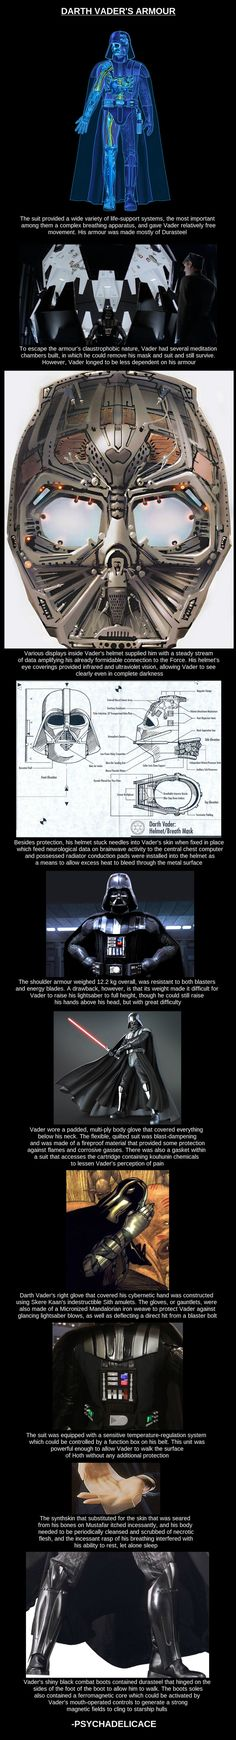 10 things you didn't know about Vader's armour. Absolutely fascinating, very interesting and so freaking awesome.